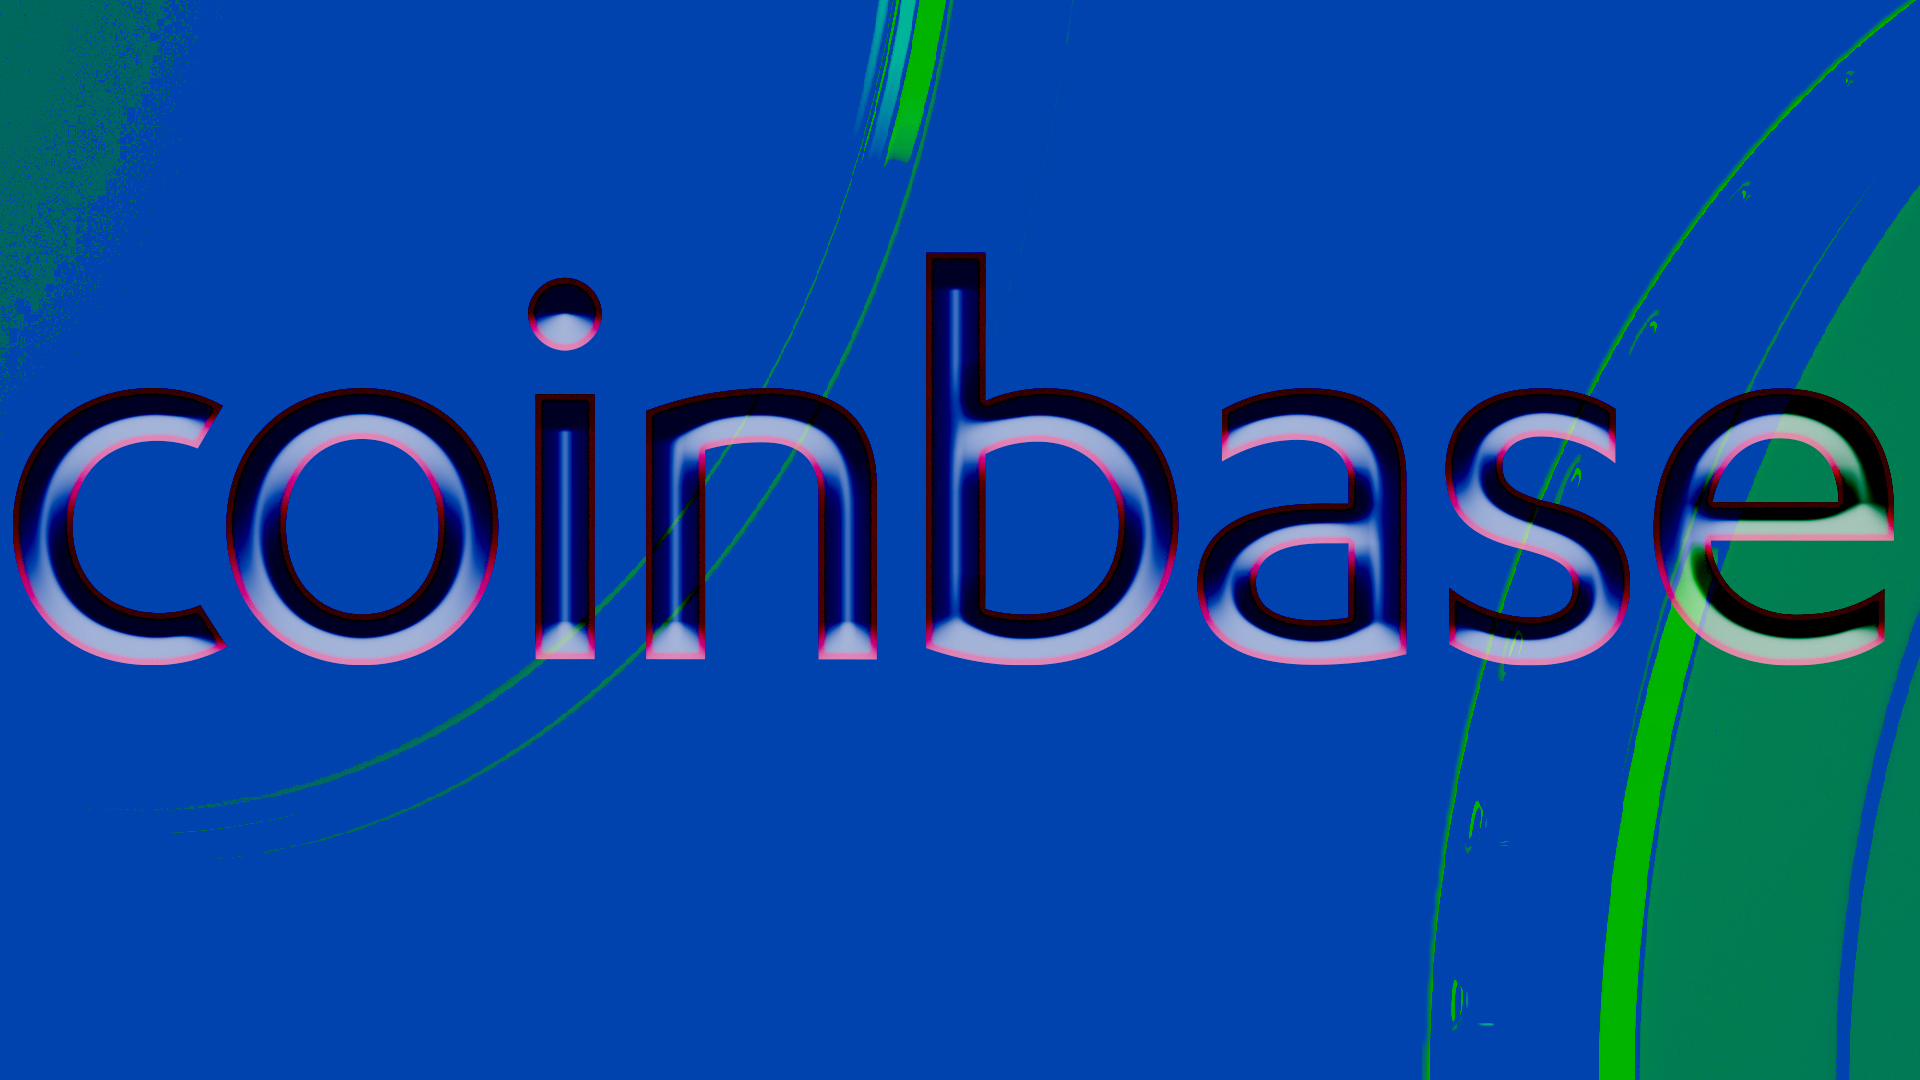 Europe's neobrokers poised to offer trading for Coinbase shares